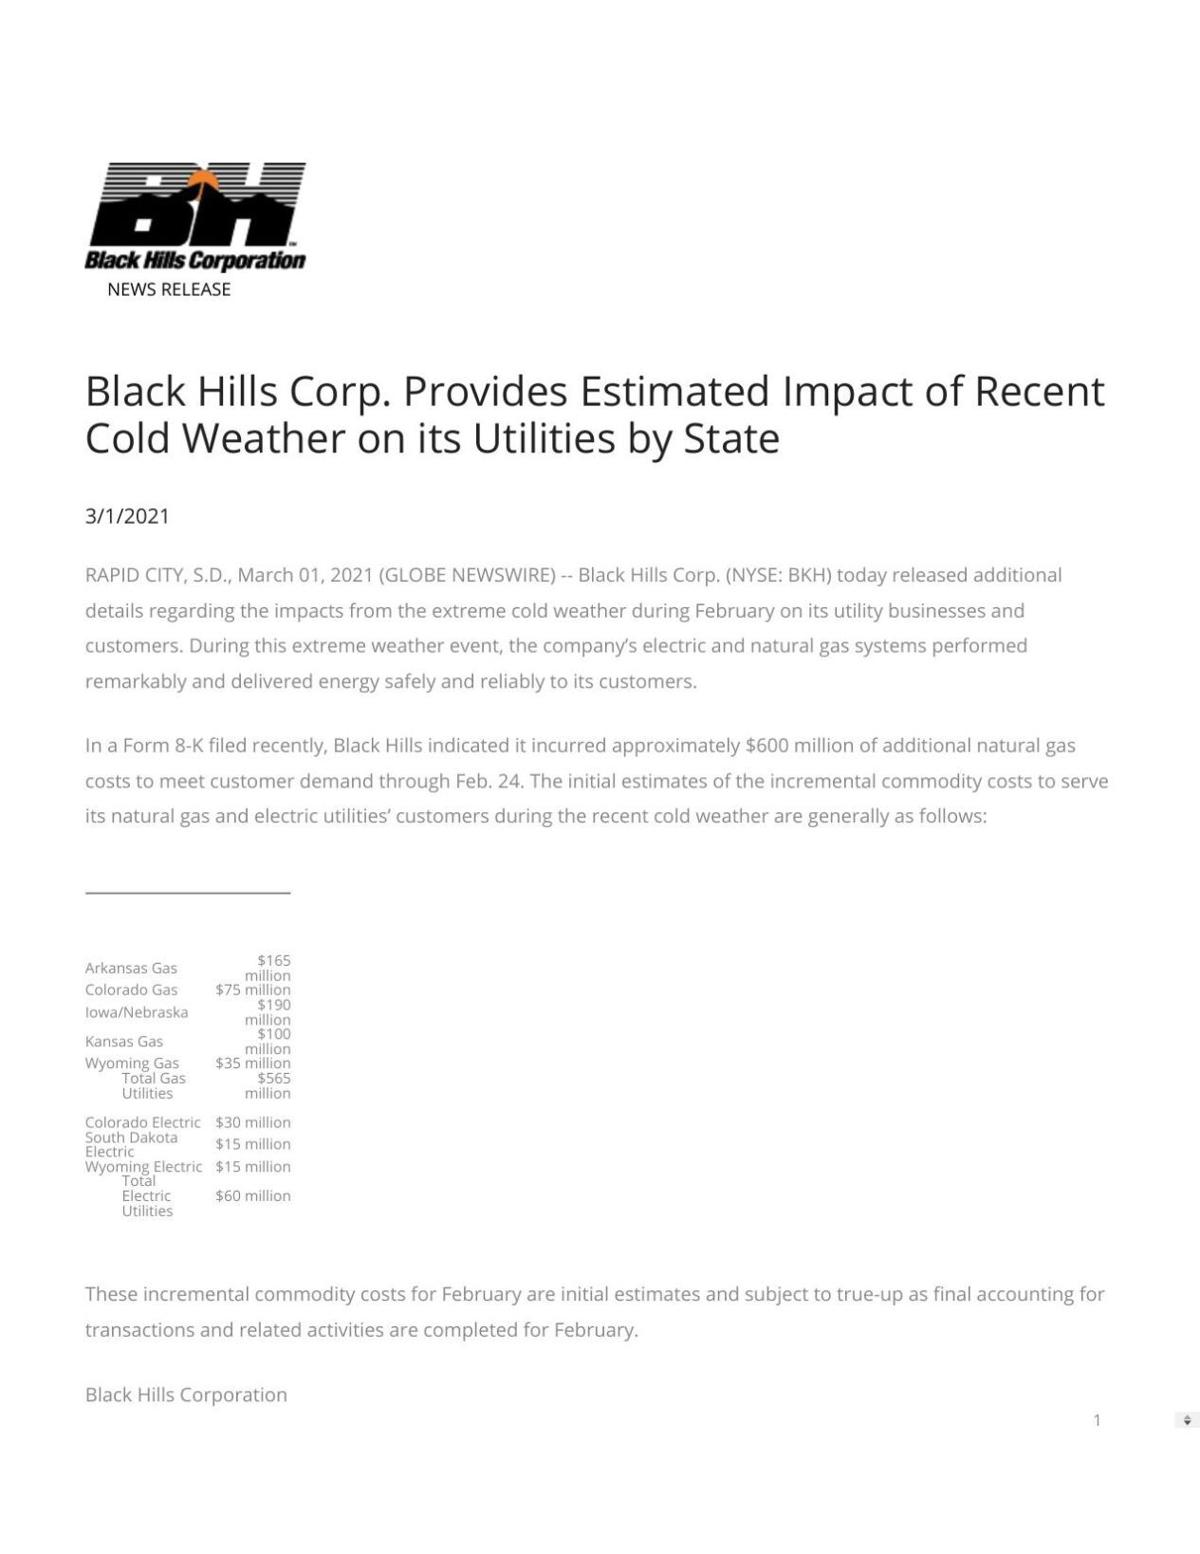 Black Hills Corp., news release on natural gas prices